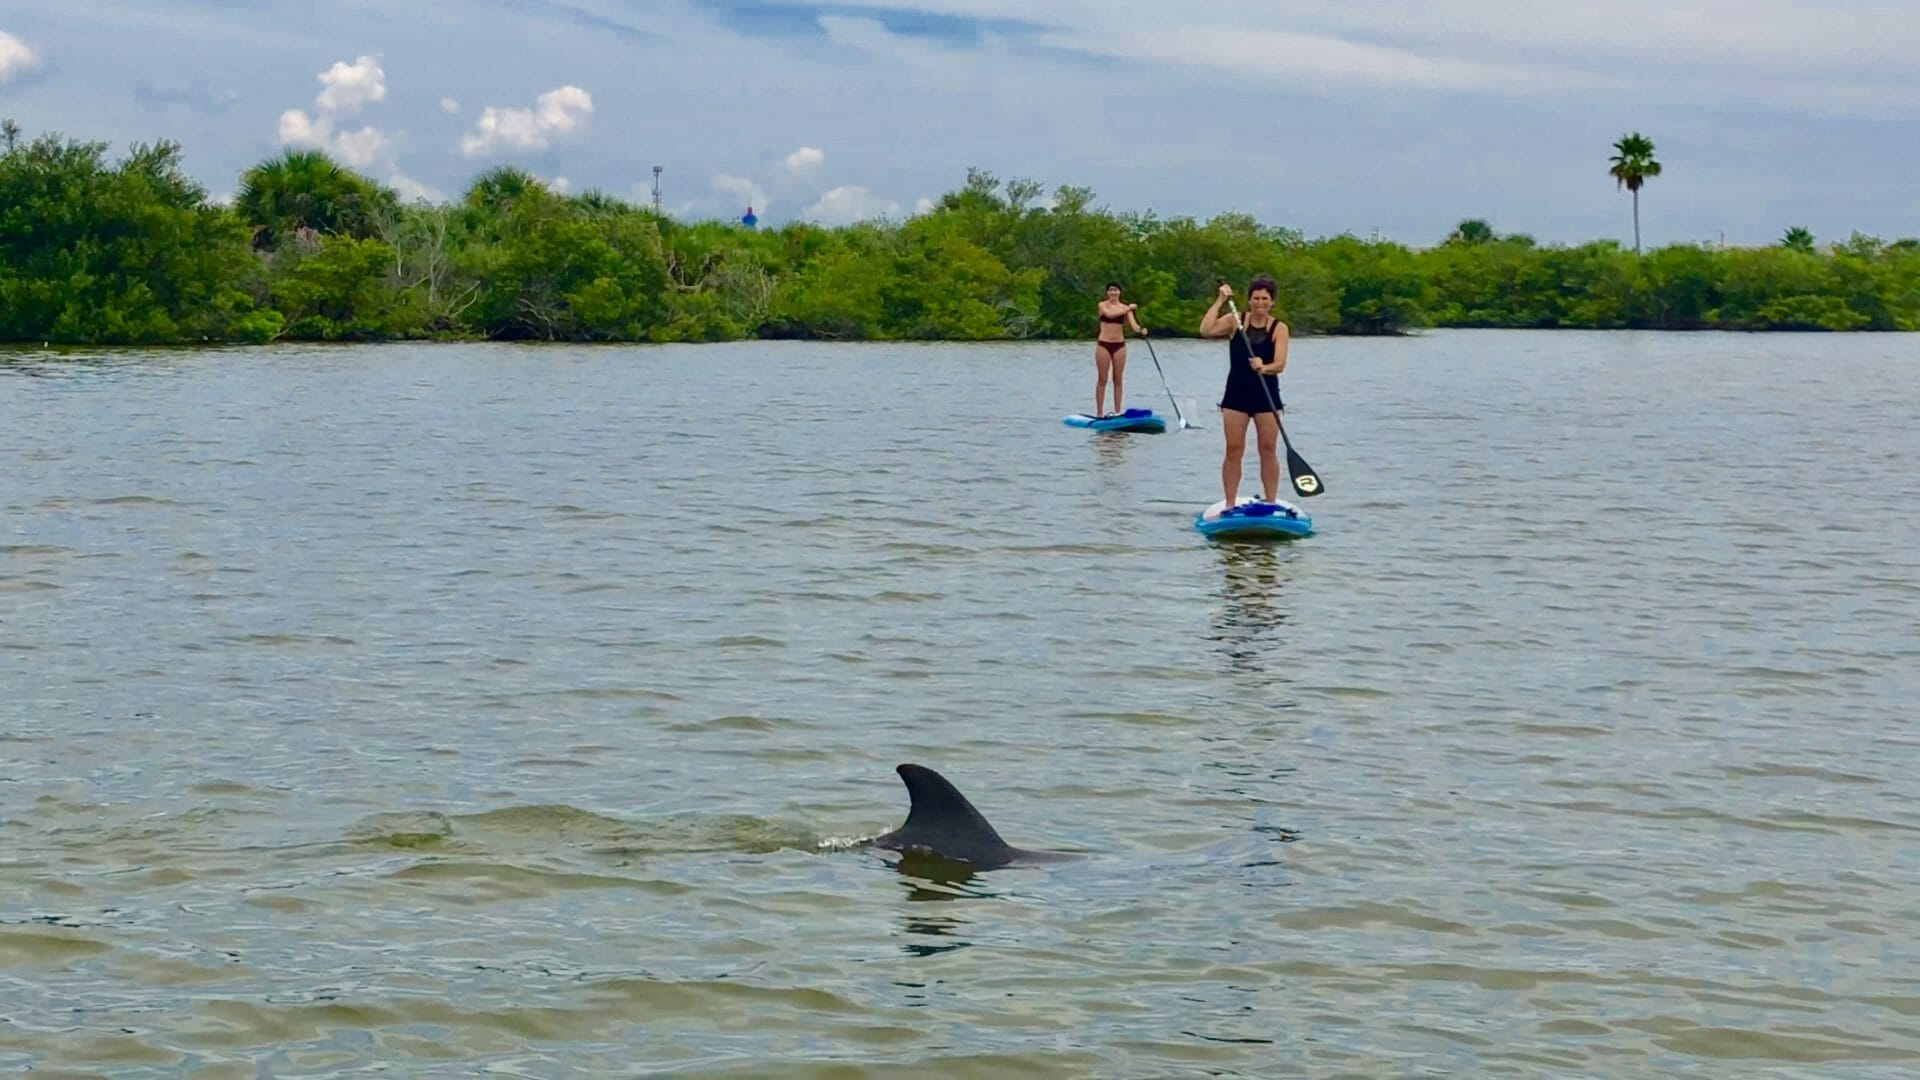 SoBe Surf Nature Tour dolphin Tour Kayak Tour Paddle Board Tour